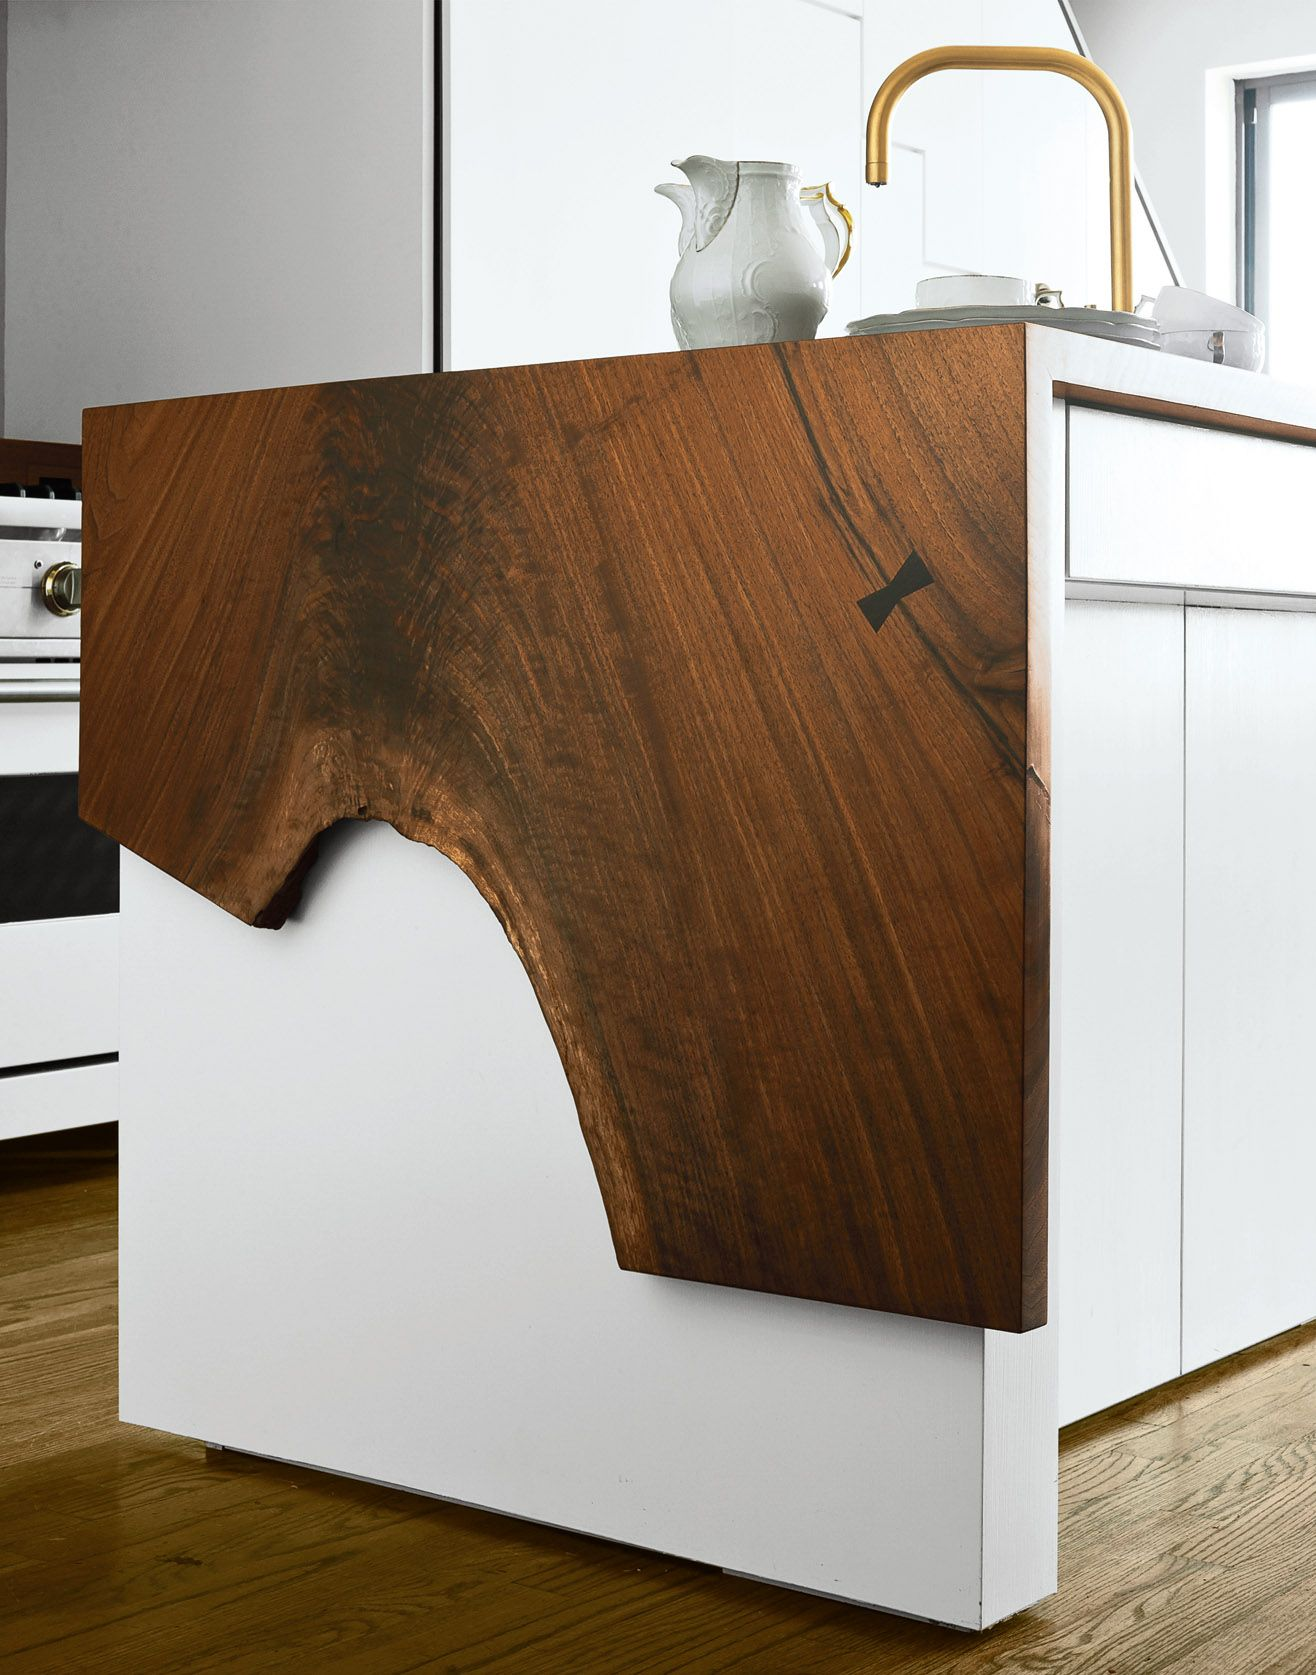 Could Be Cool Detail At Leasing Desk Or The Kitchen Island